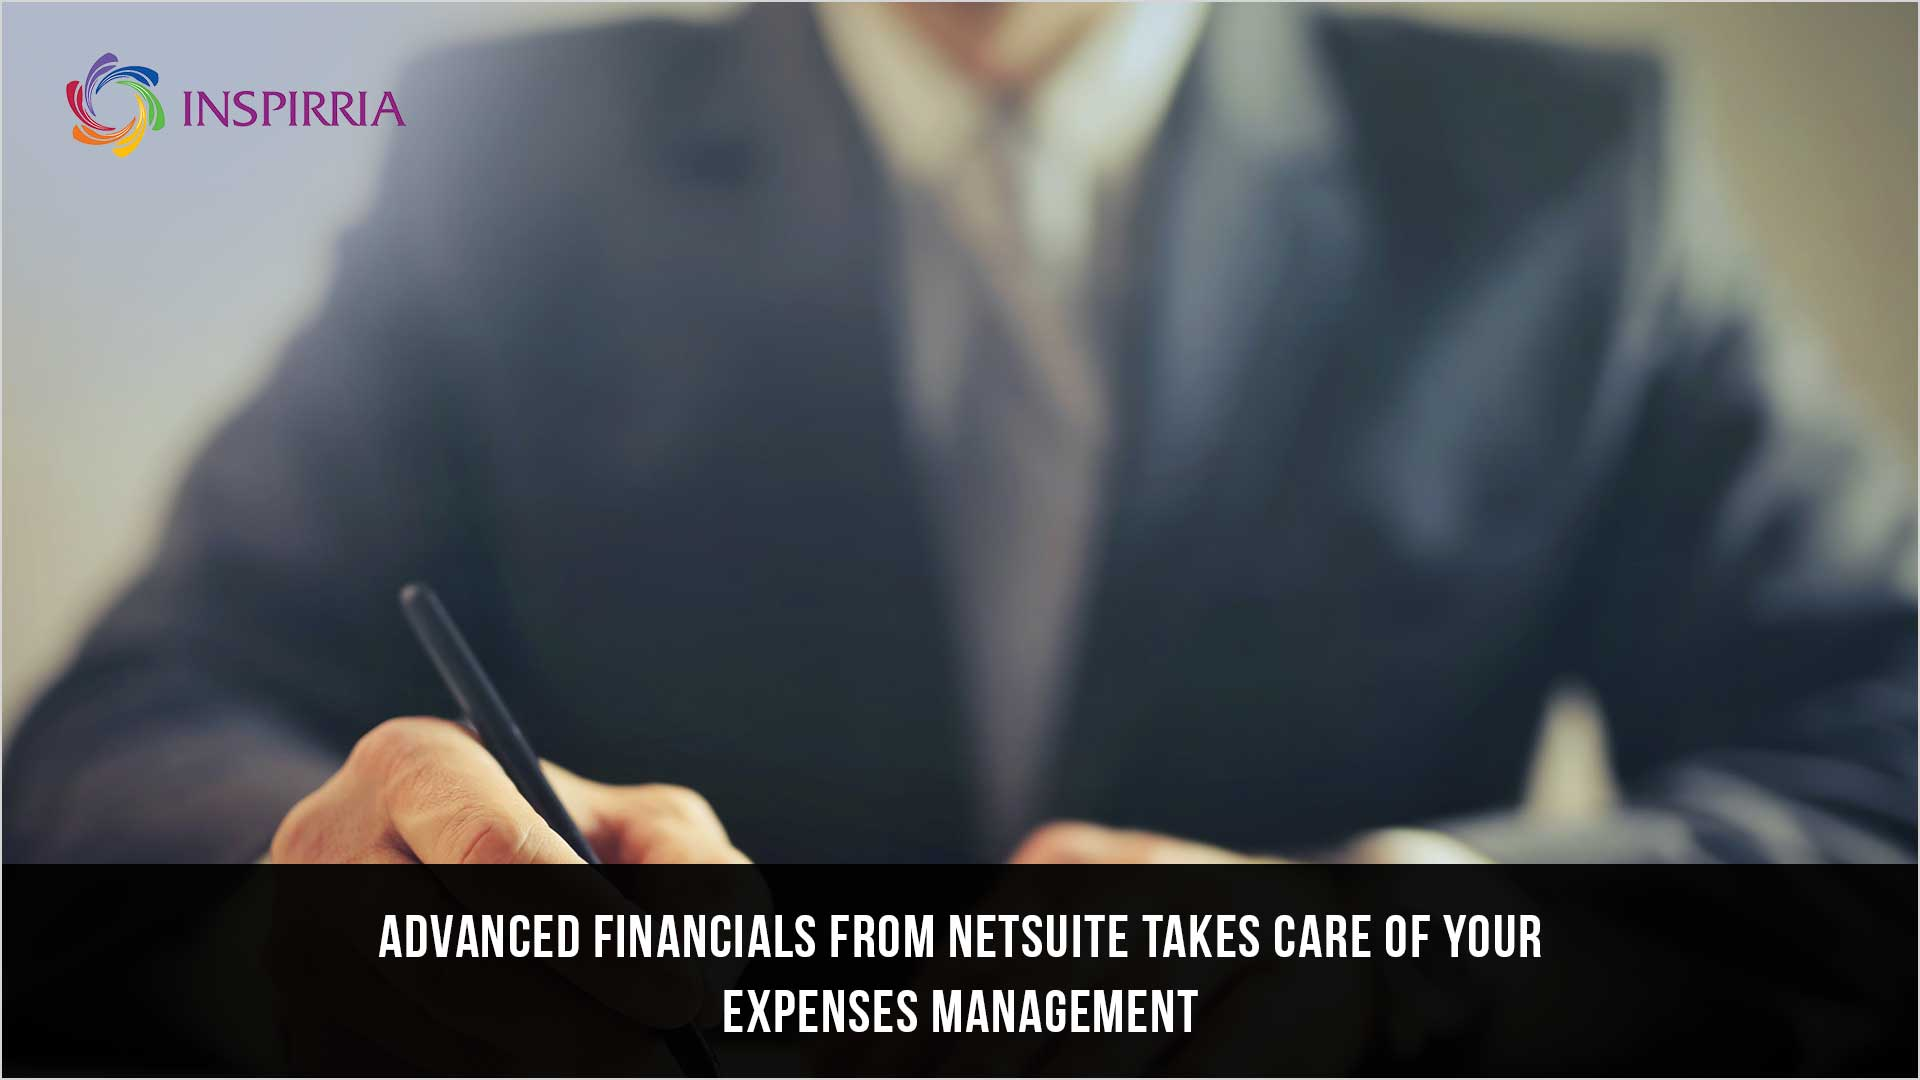 NetSuite Financial Services